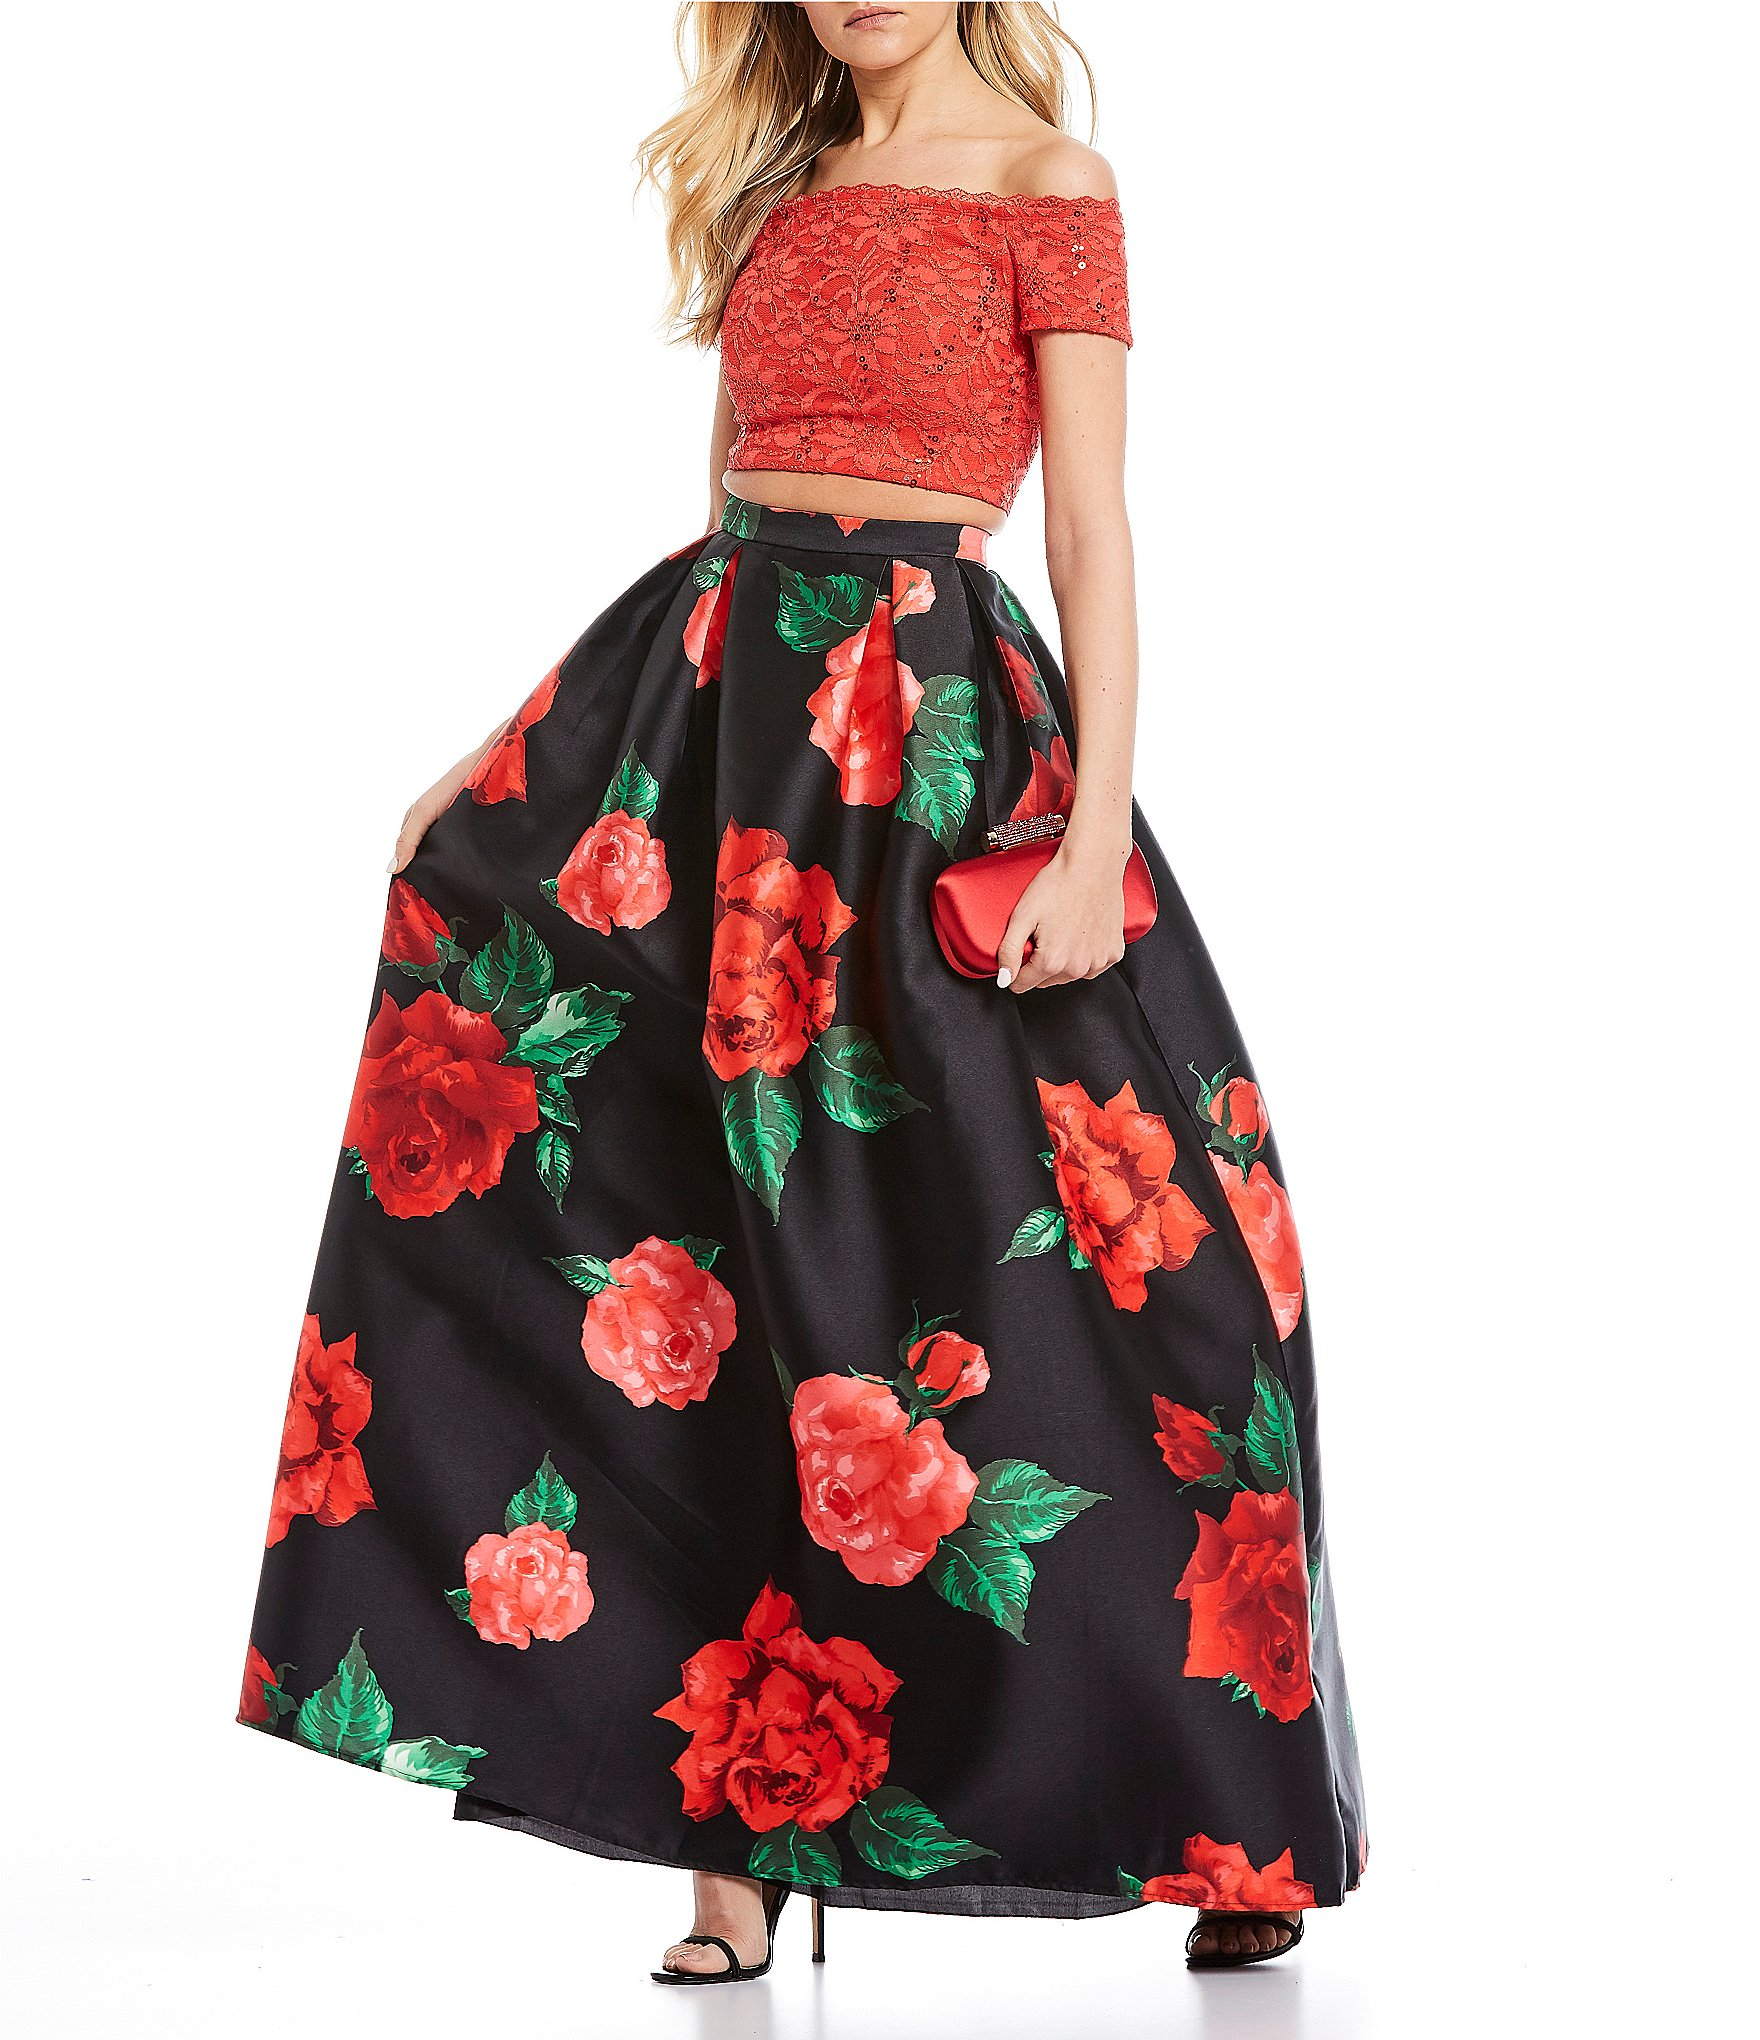 B Darlin Off The Shoulder Lace Top With Floral Skirt Two Piece Ball Gown Dillard S